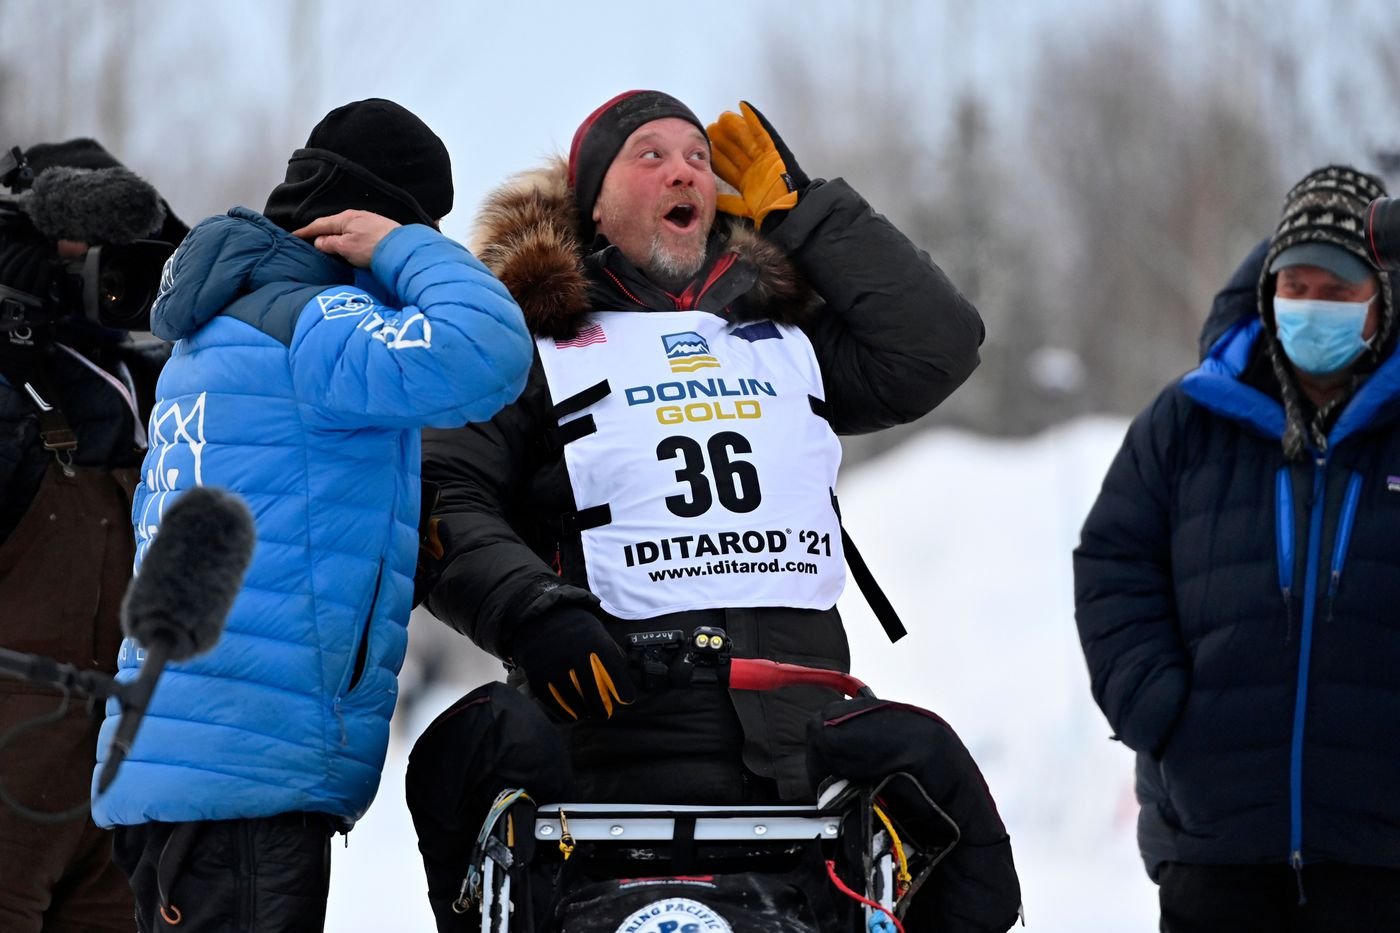 Aaron Burmeister, right, talks with Iditarod race winner Dallas Seavey after Burmeister arrived in Willow in second place Monday morning. (Marc Lester / ADN)